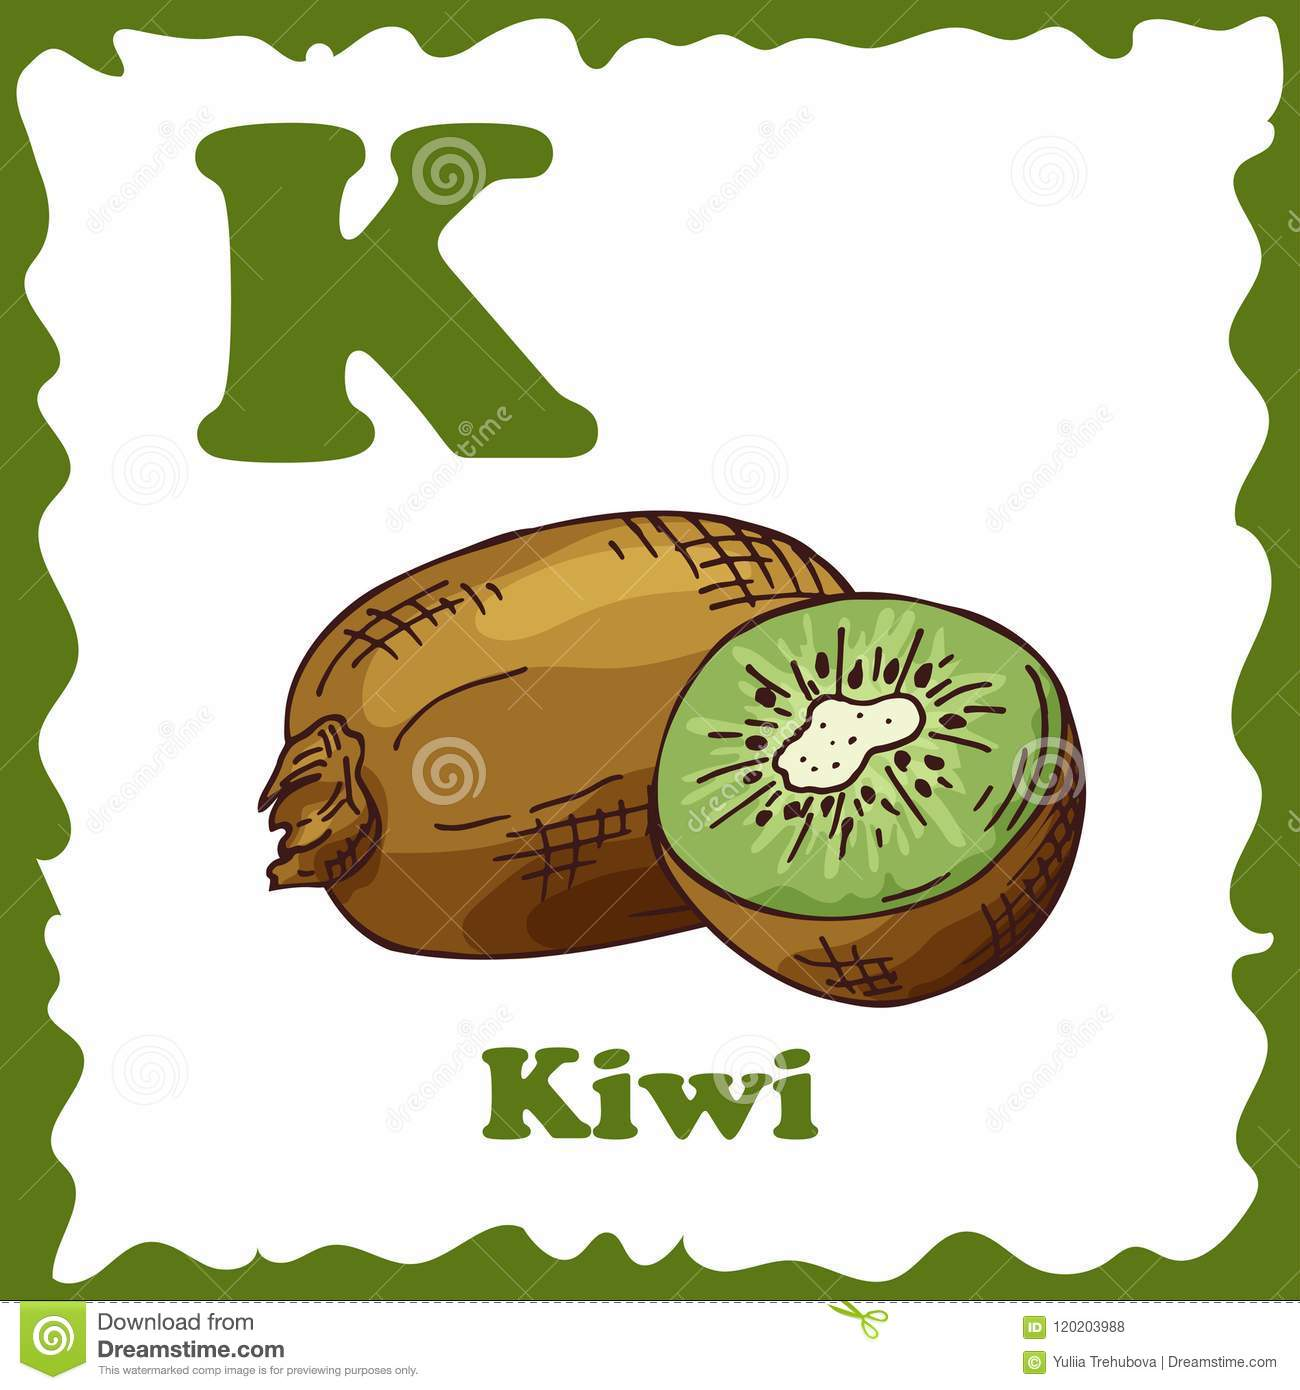 Alphabet For Kids With Fruits Healthy Letter Abc K Kiwi